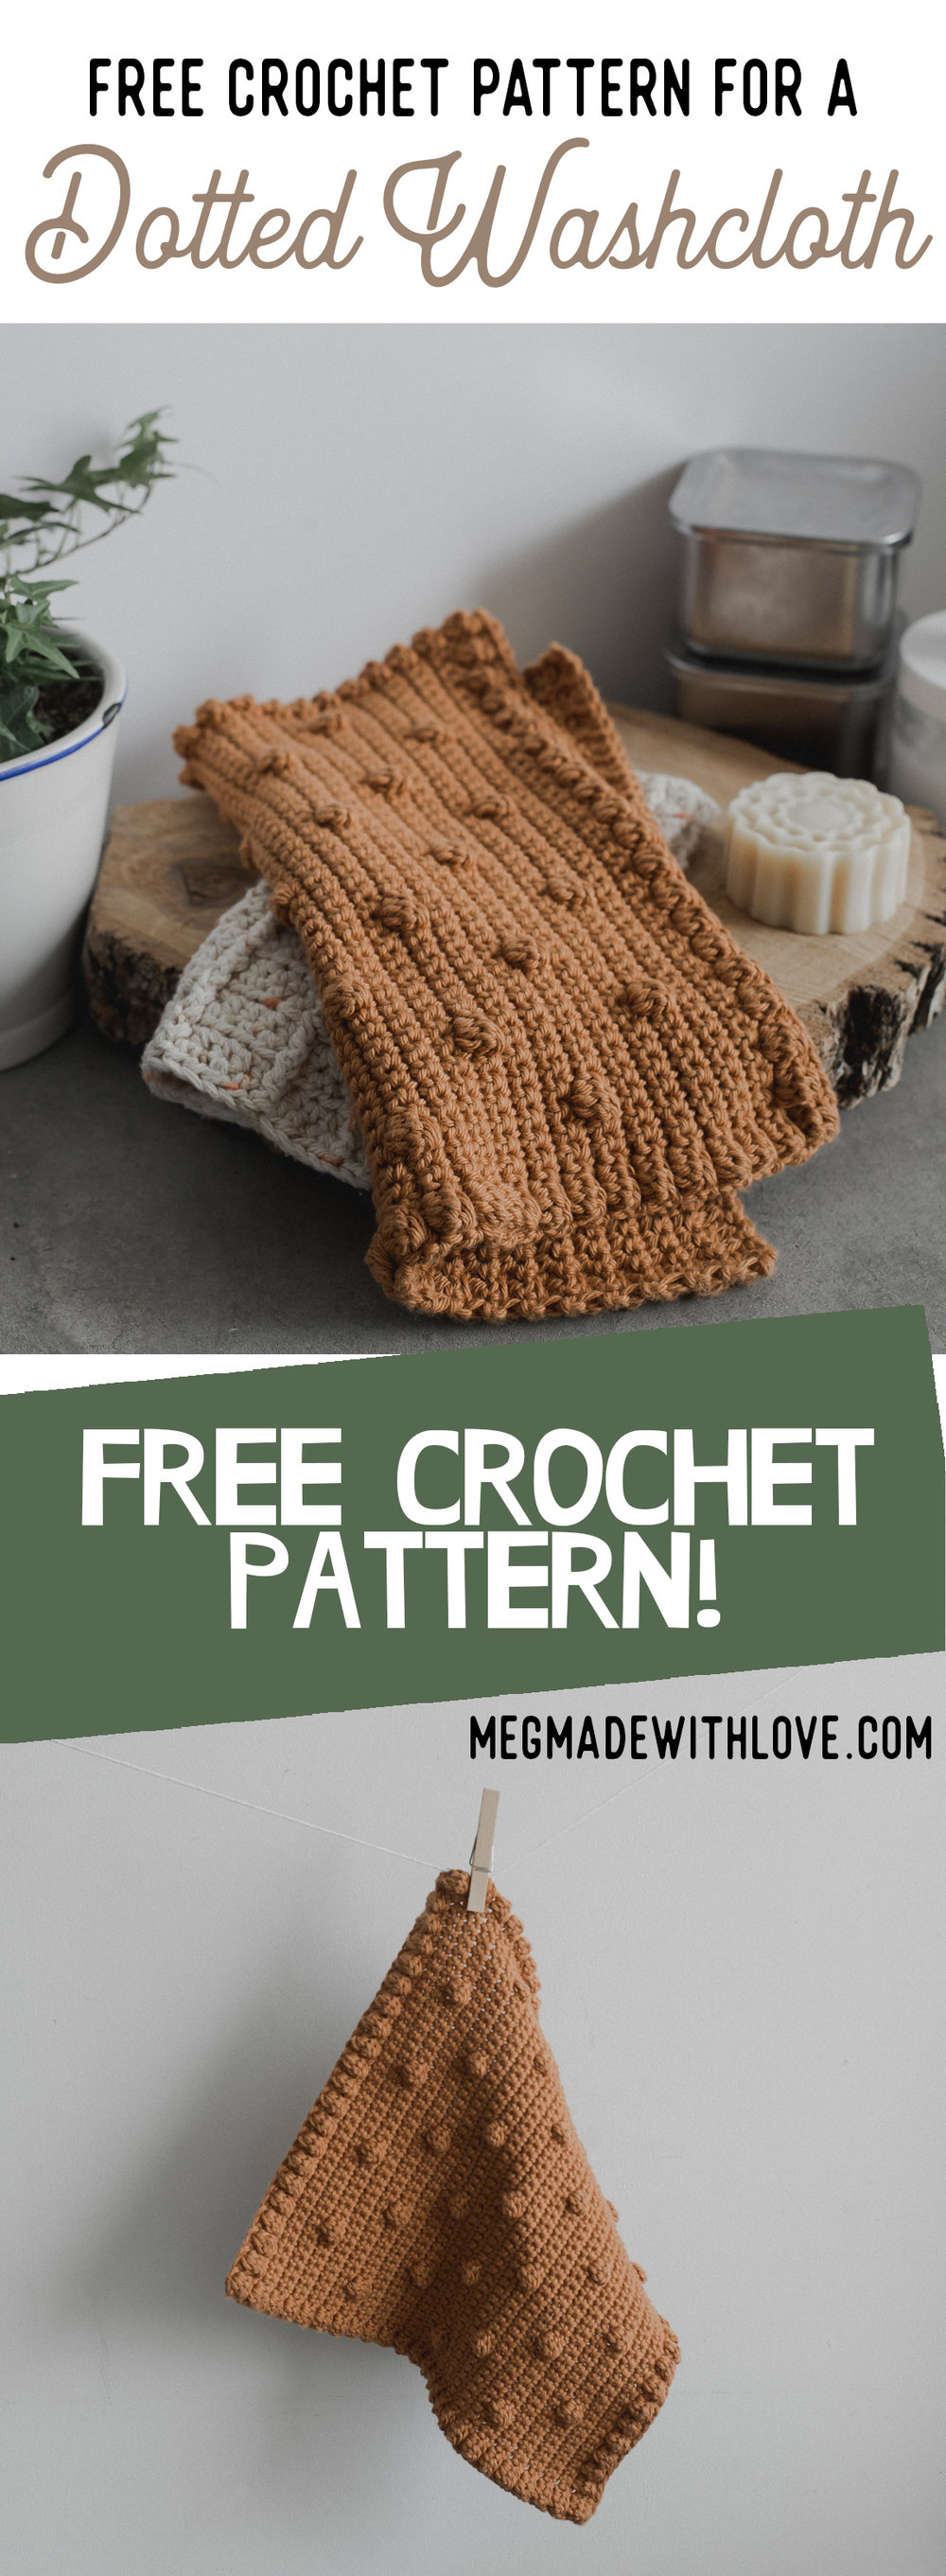 Free Crochet Pattern for a Dotted Washcloth — Megmade with Love